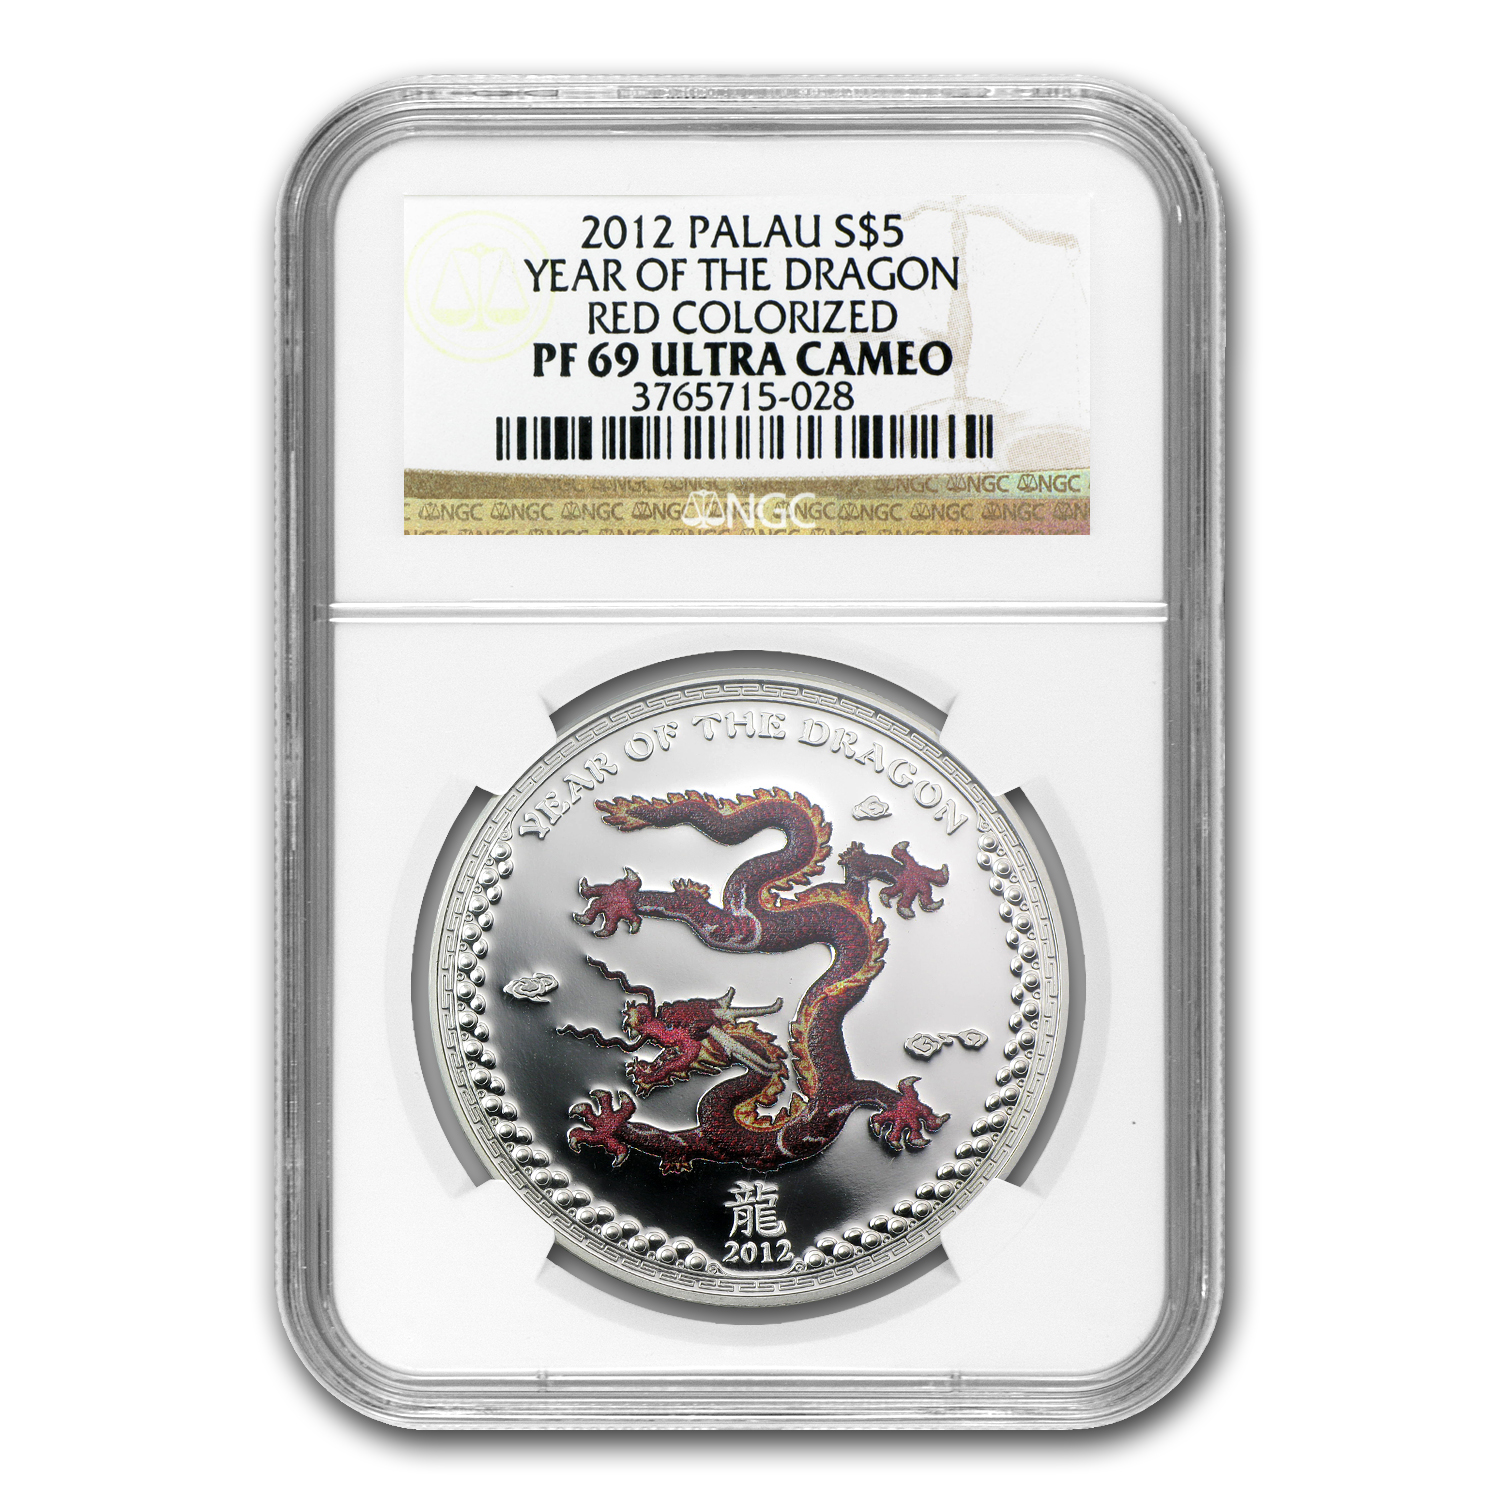 2012 Palau $5 Silver Dragon Red Colorized (Left) NGC PF-69 UC